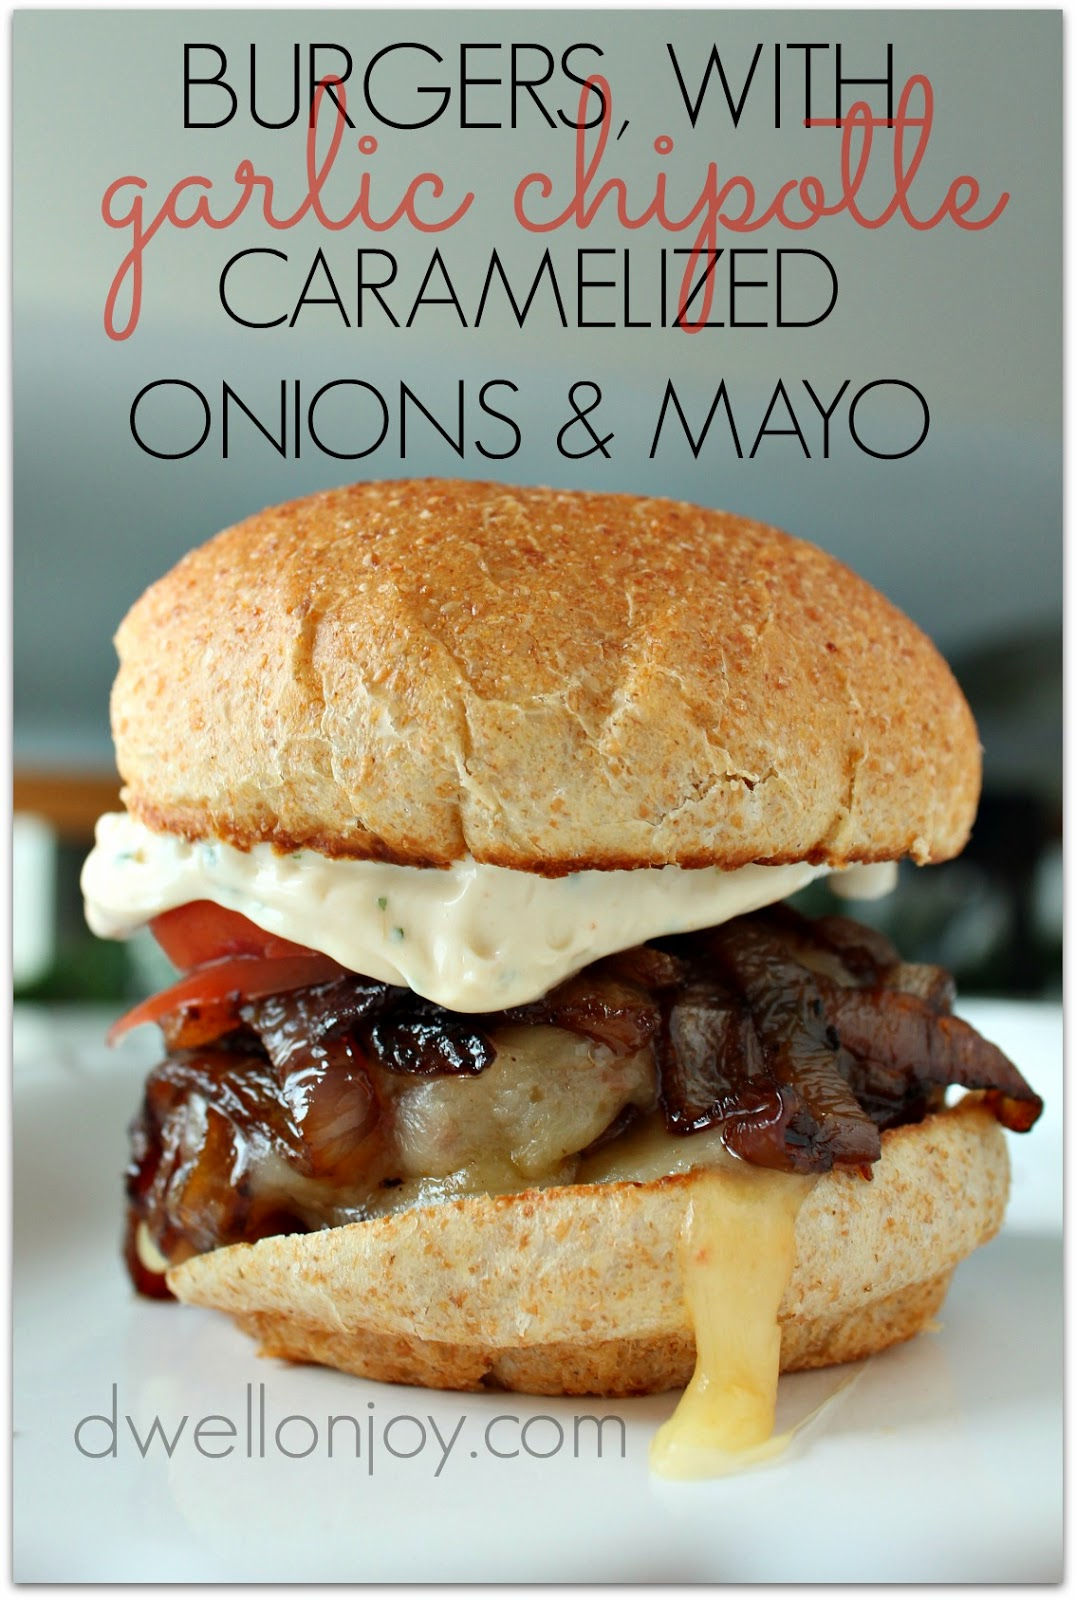 Dwell on Joy: Burgers with Garlic Chipolte Caramelized Onions & Mayo